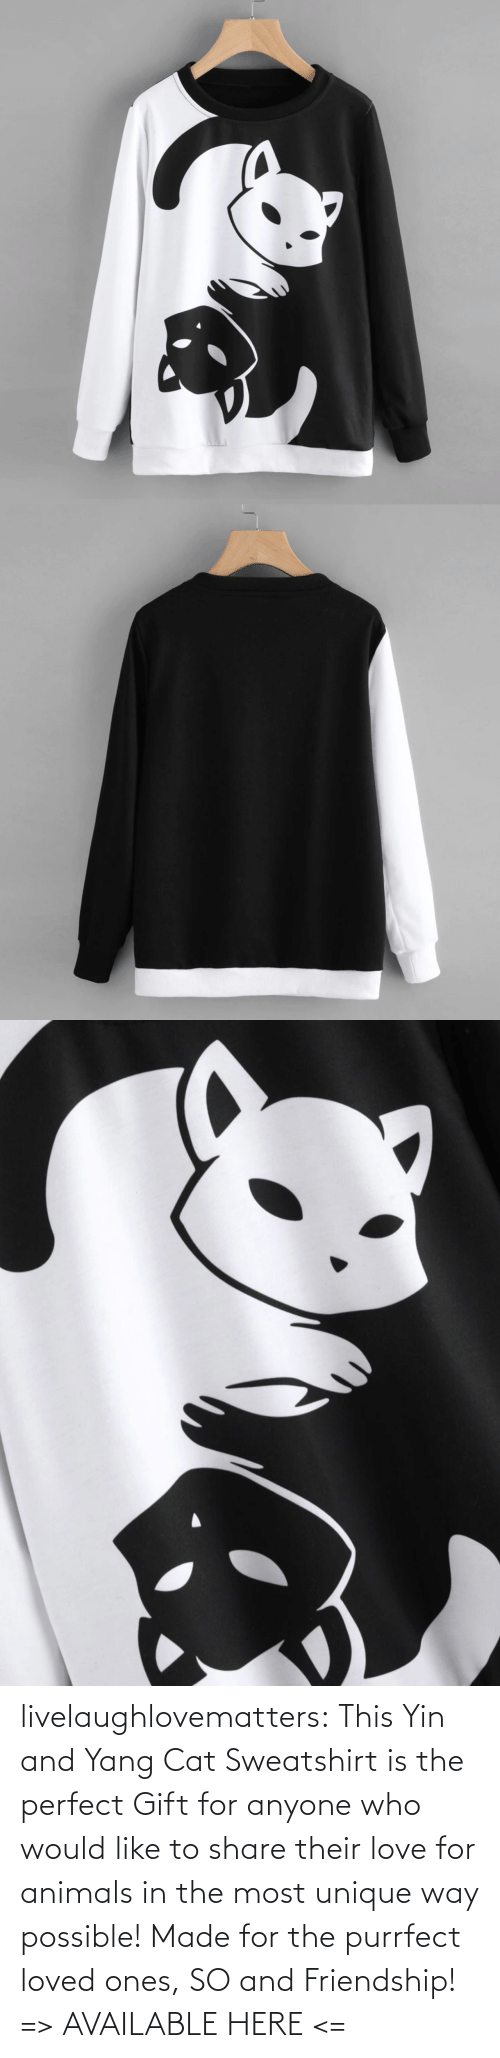 Black and White: livelaughlovematters:  This Yin and Yang Cat Sweatshirt is the perfect Gift for anyone who would like to share their love for animals in the most unique way possible! Made for the purrfect loved ones, SO and Friendship!  => AVAILABLE HERE <=